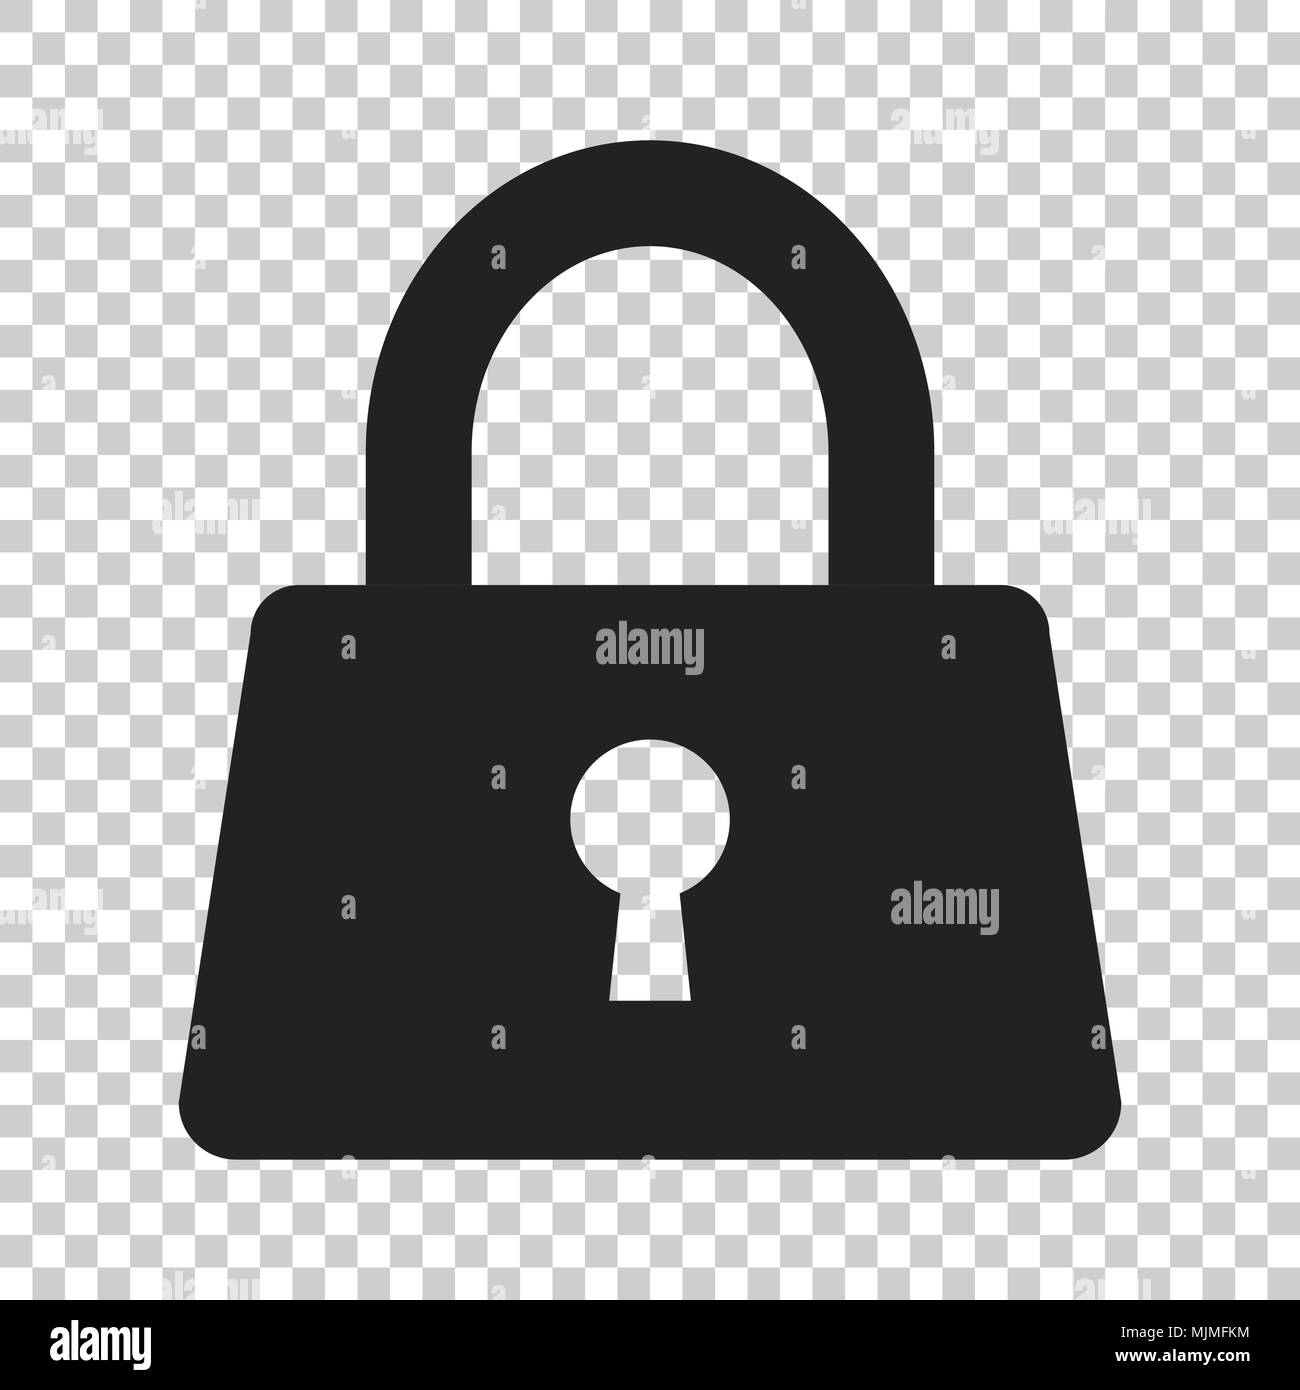 Padlock icon in flat style. Lock, unlock security illustration on isolated transparent background. Padlock business concept. - Stock Image